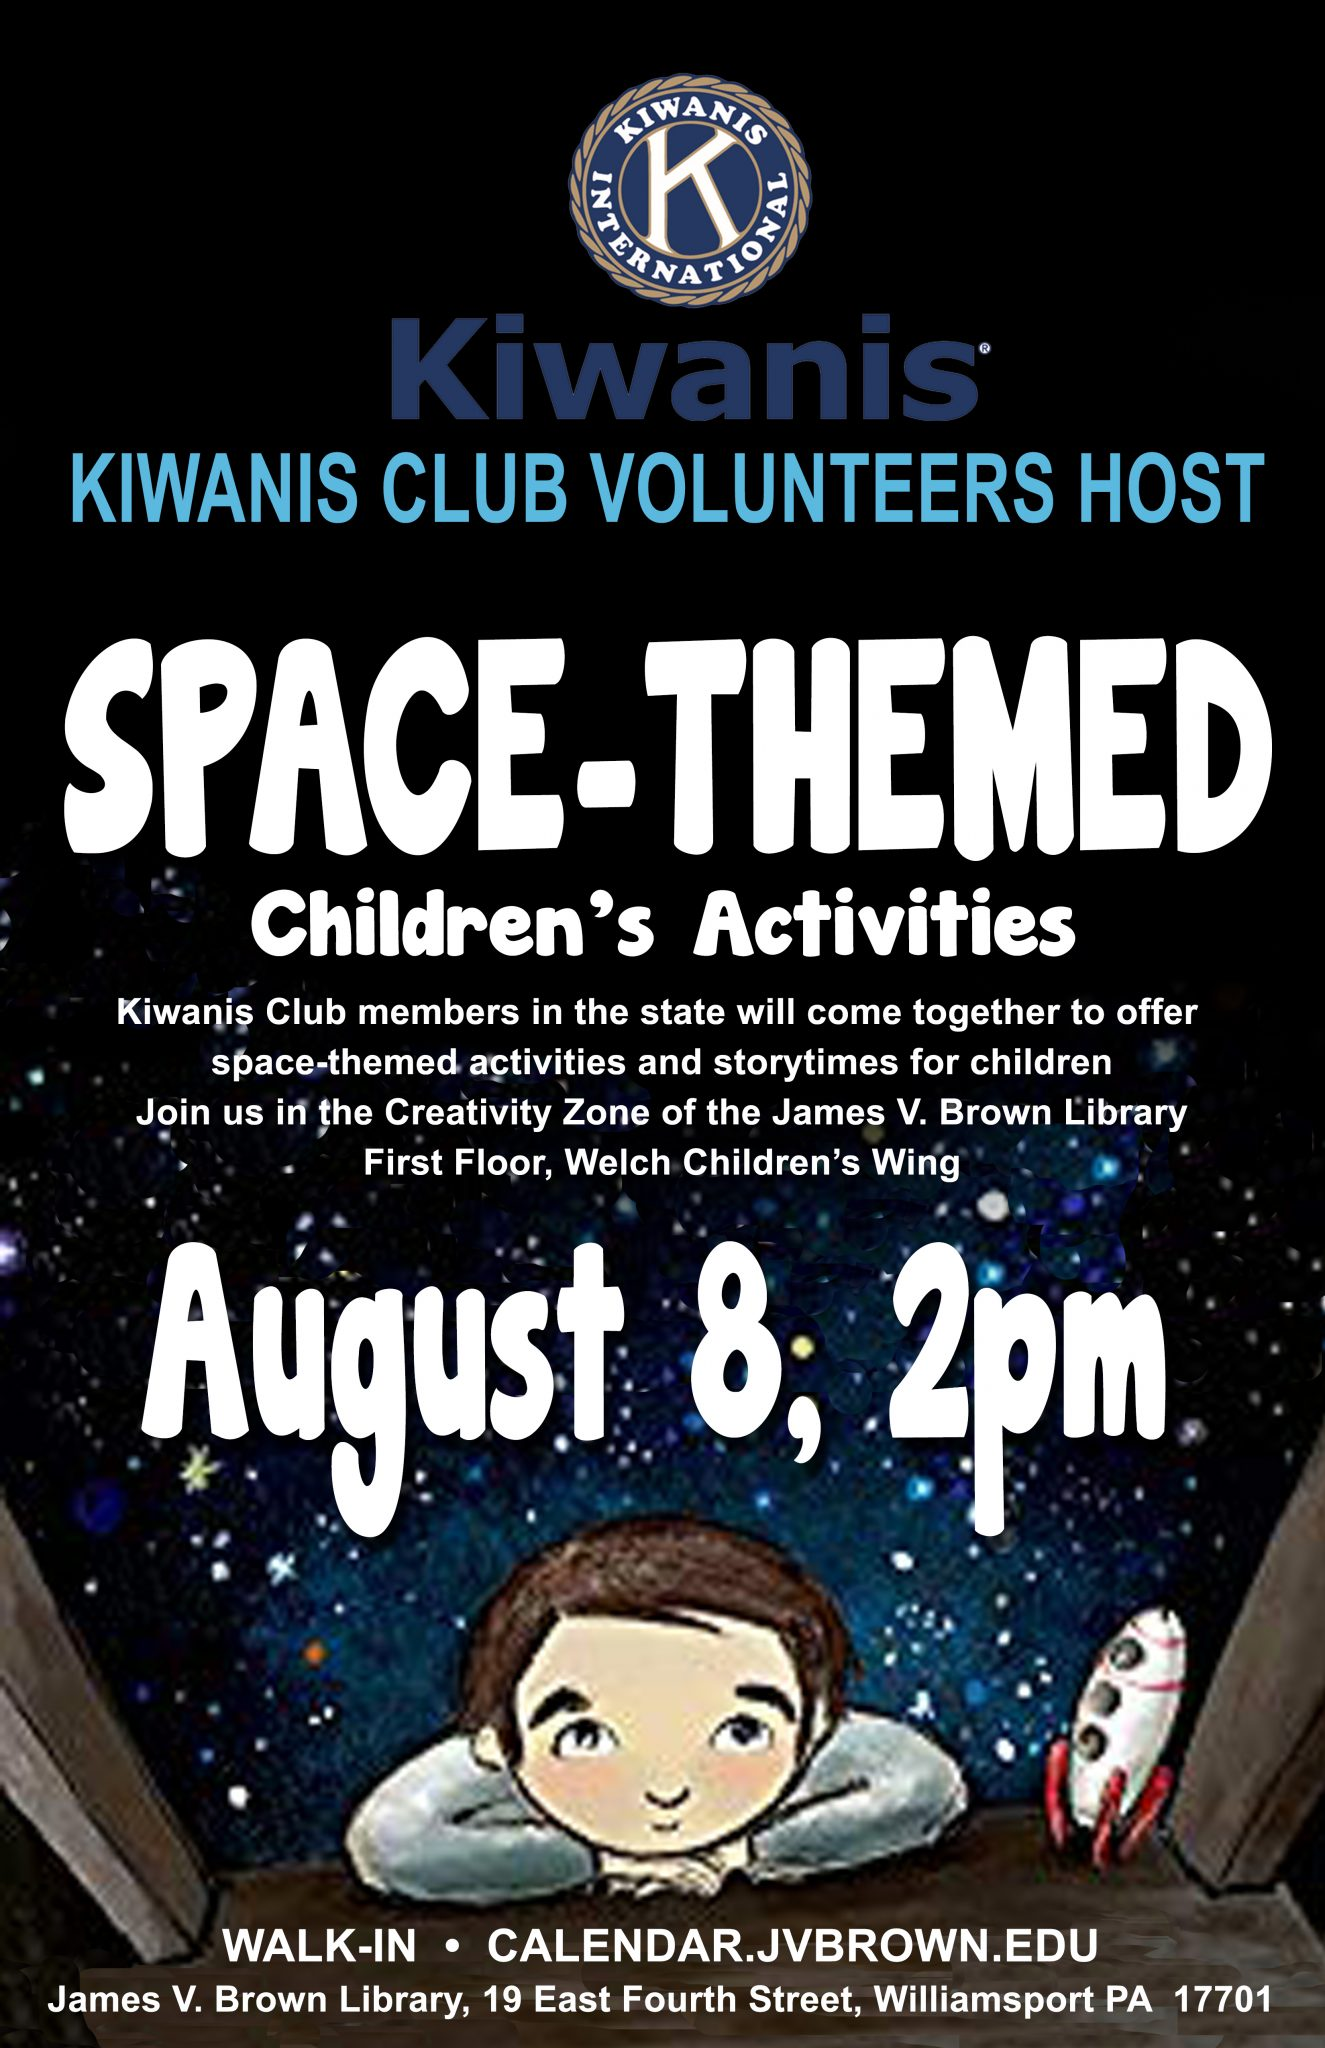 Library to host Kiwanis Club volunteers for space-themed fun